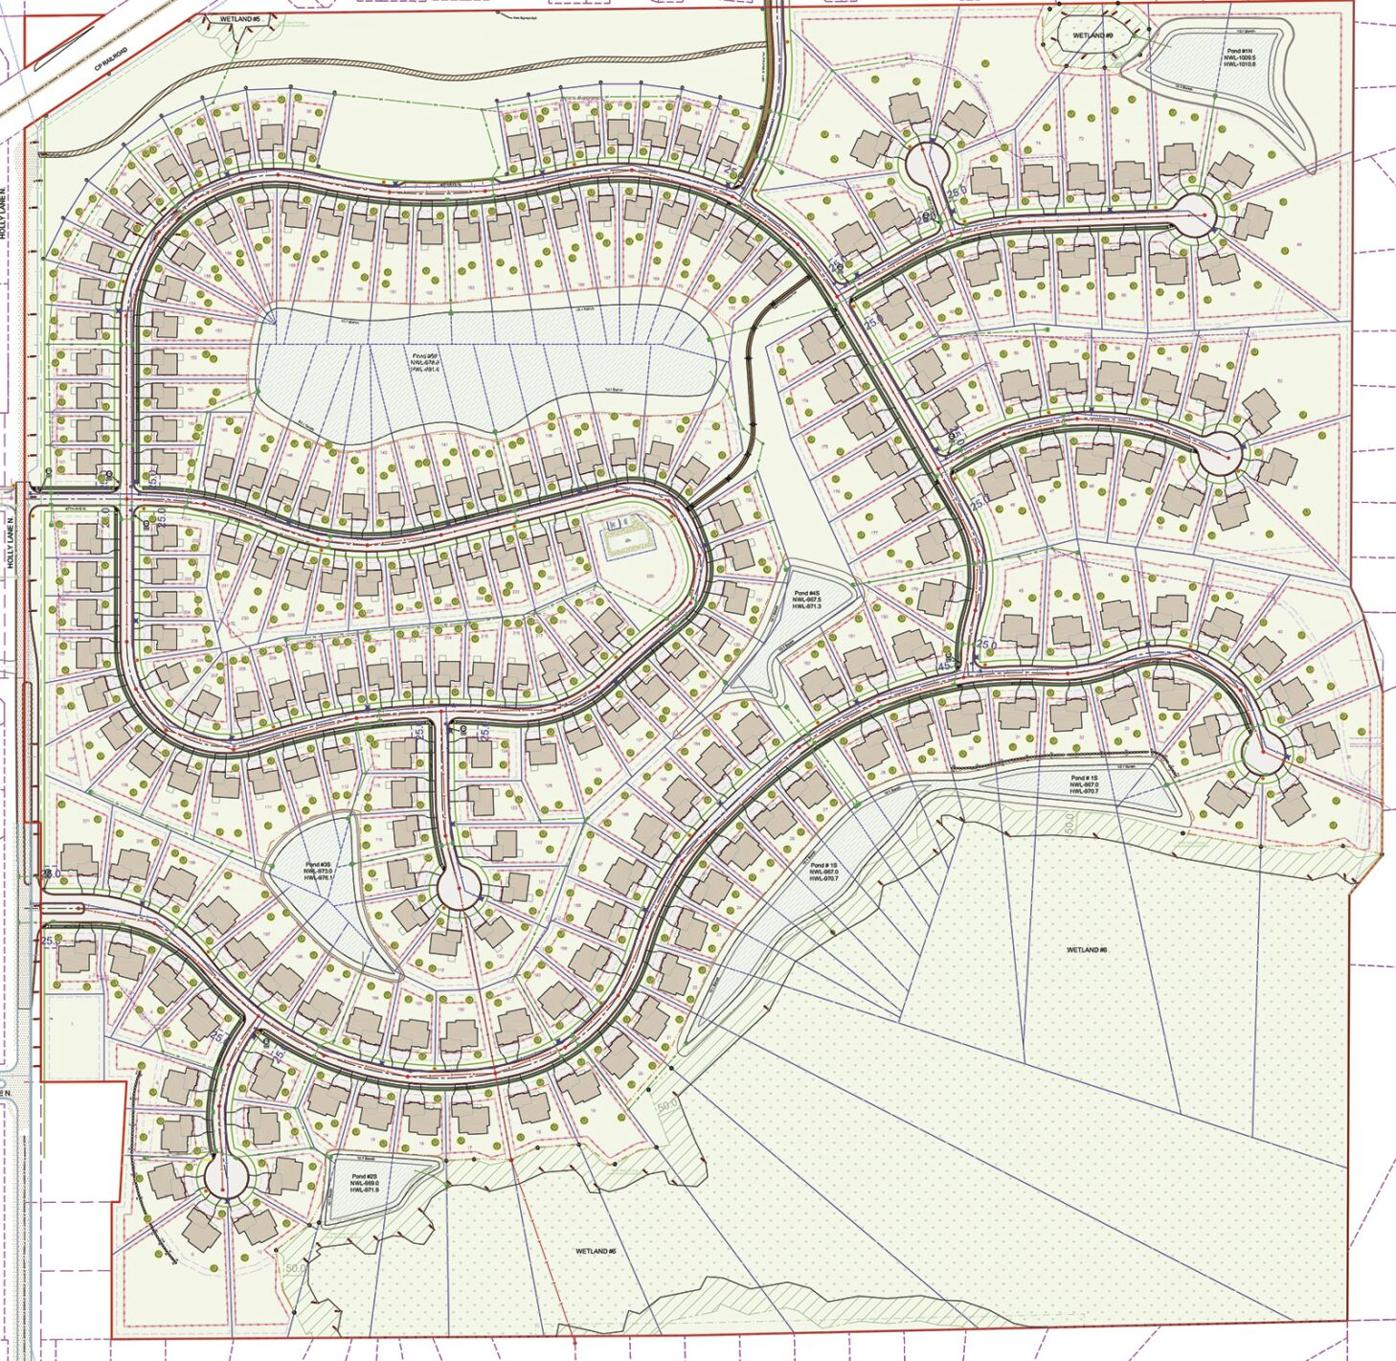 Hollydale housing development rejected by Plymouth City Council